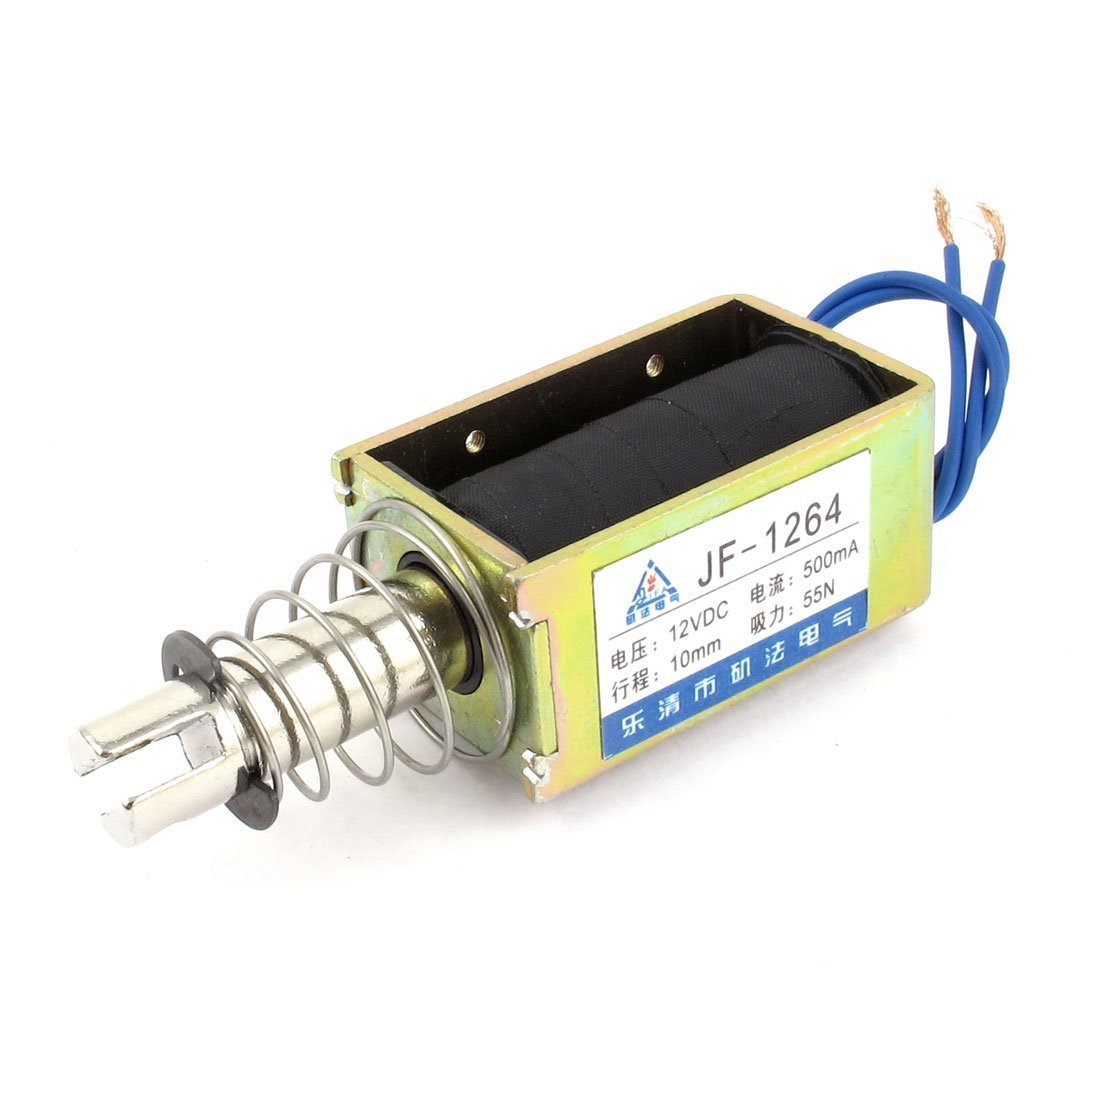 Electromagnet uxcell DC12V 500mA 55N Pull Type Open Frame Actuator Solenoid